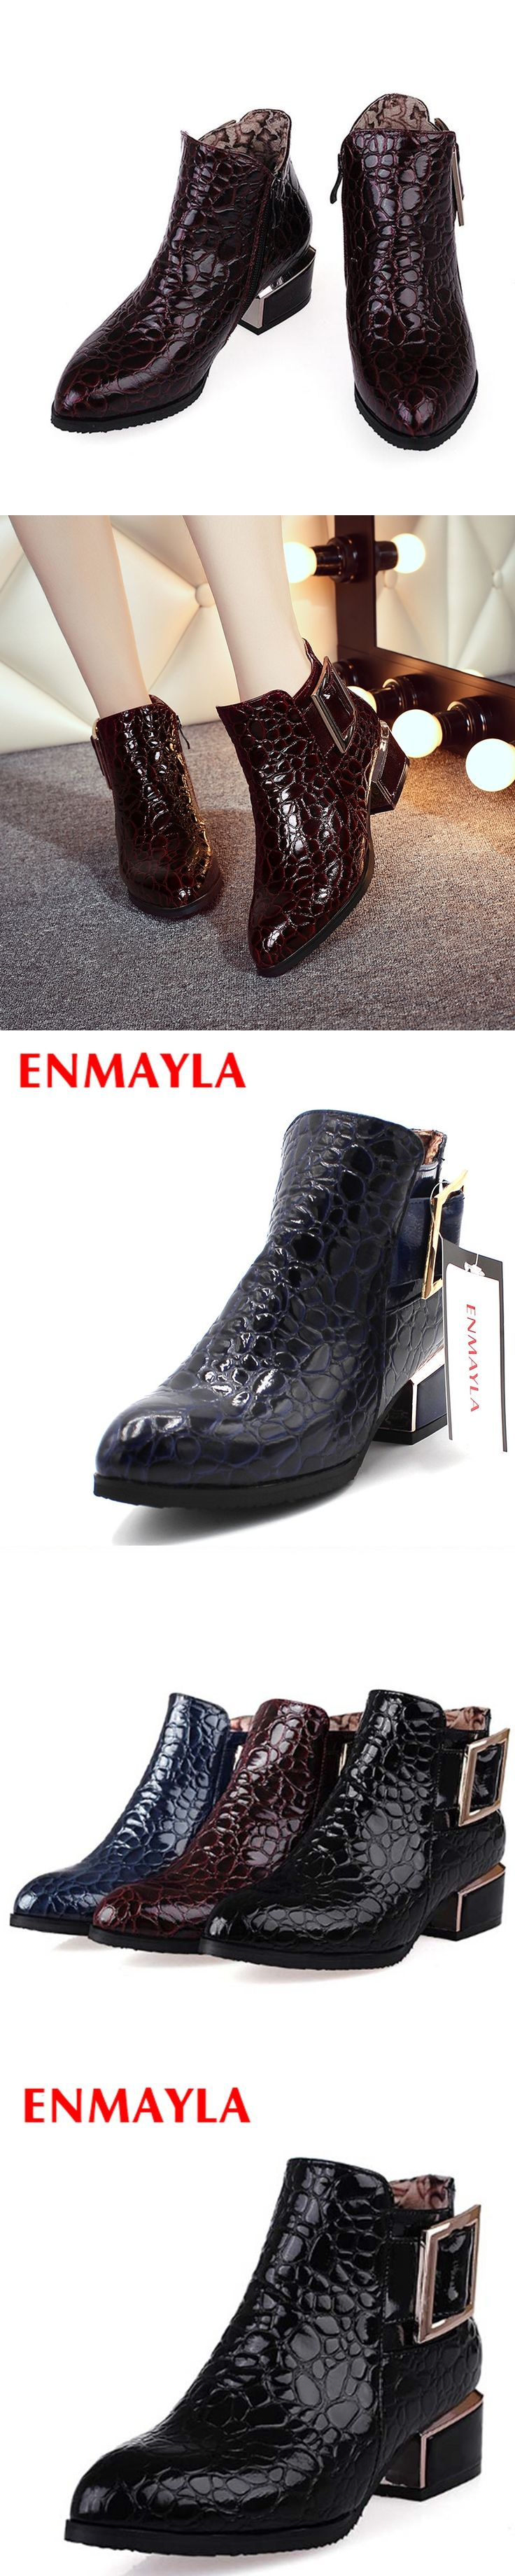 ENMAYLA New Ankle Boots Zip Fashion Autumn Winter Short Shoes Woman Boots Pointed Toe Metal Buckle Shoes Women Ankle Boots Sale